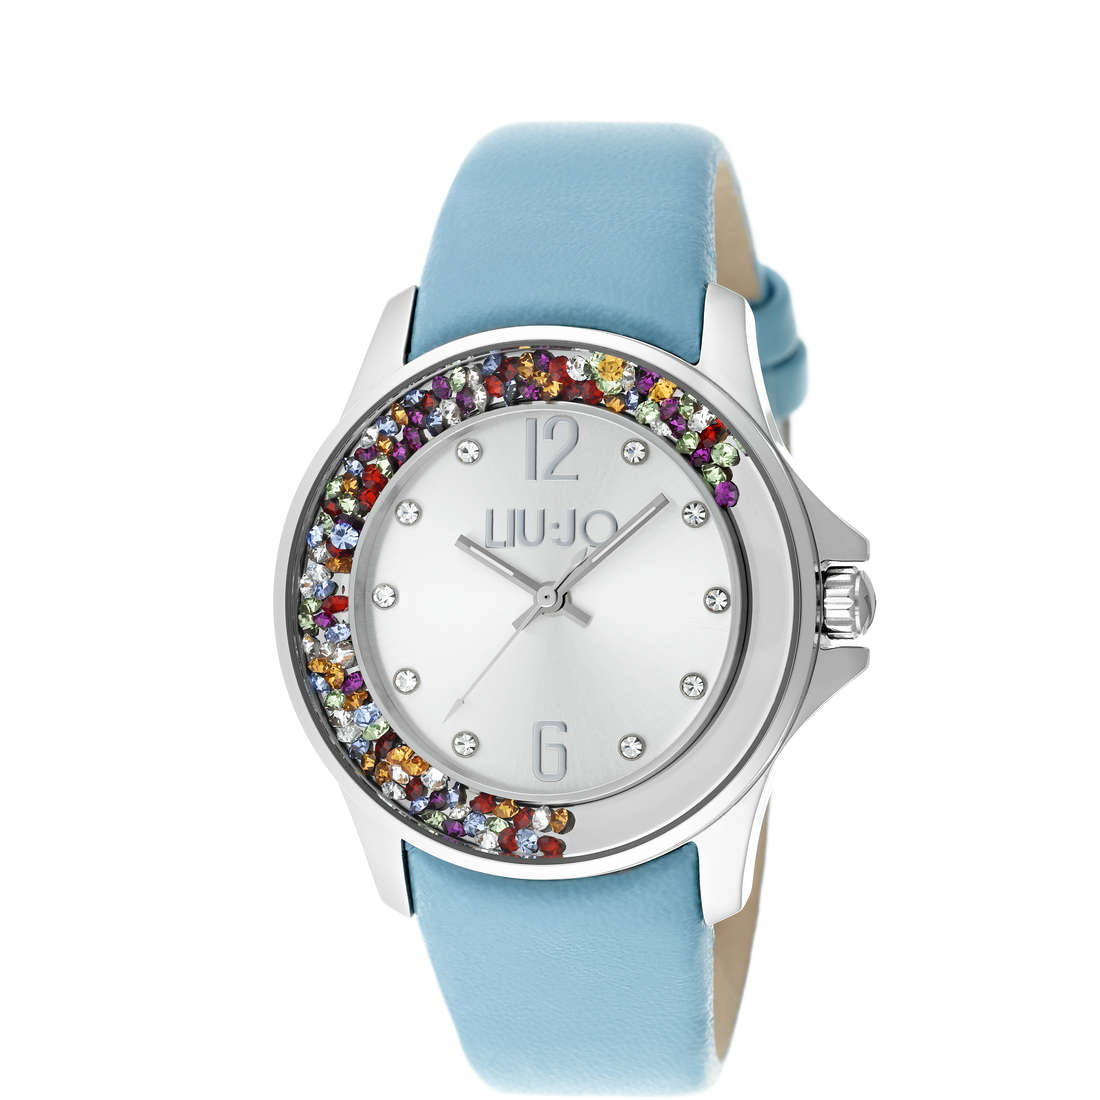 Ladies fashion watches uk 9